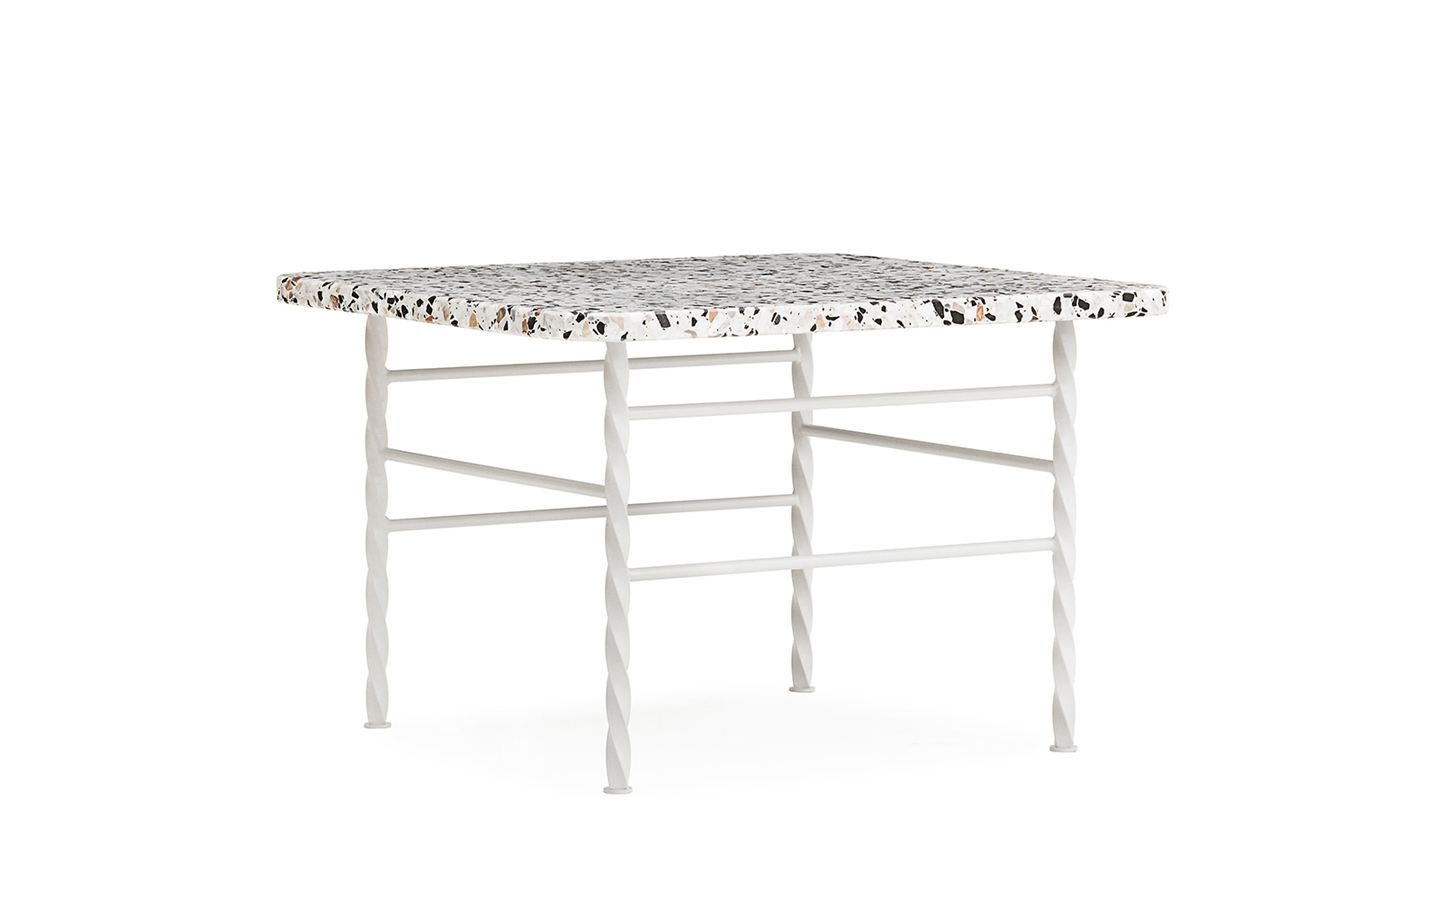 terra-simon-legald-table-blog-espritdesign-9